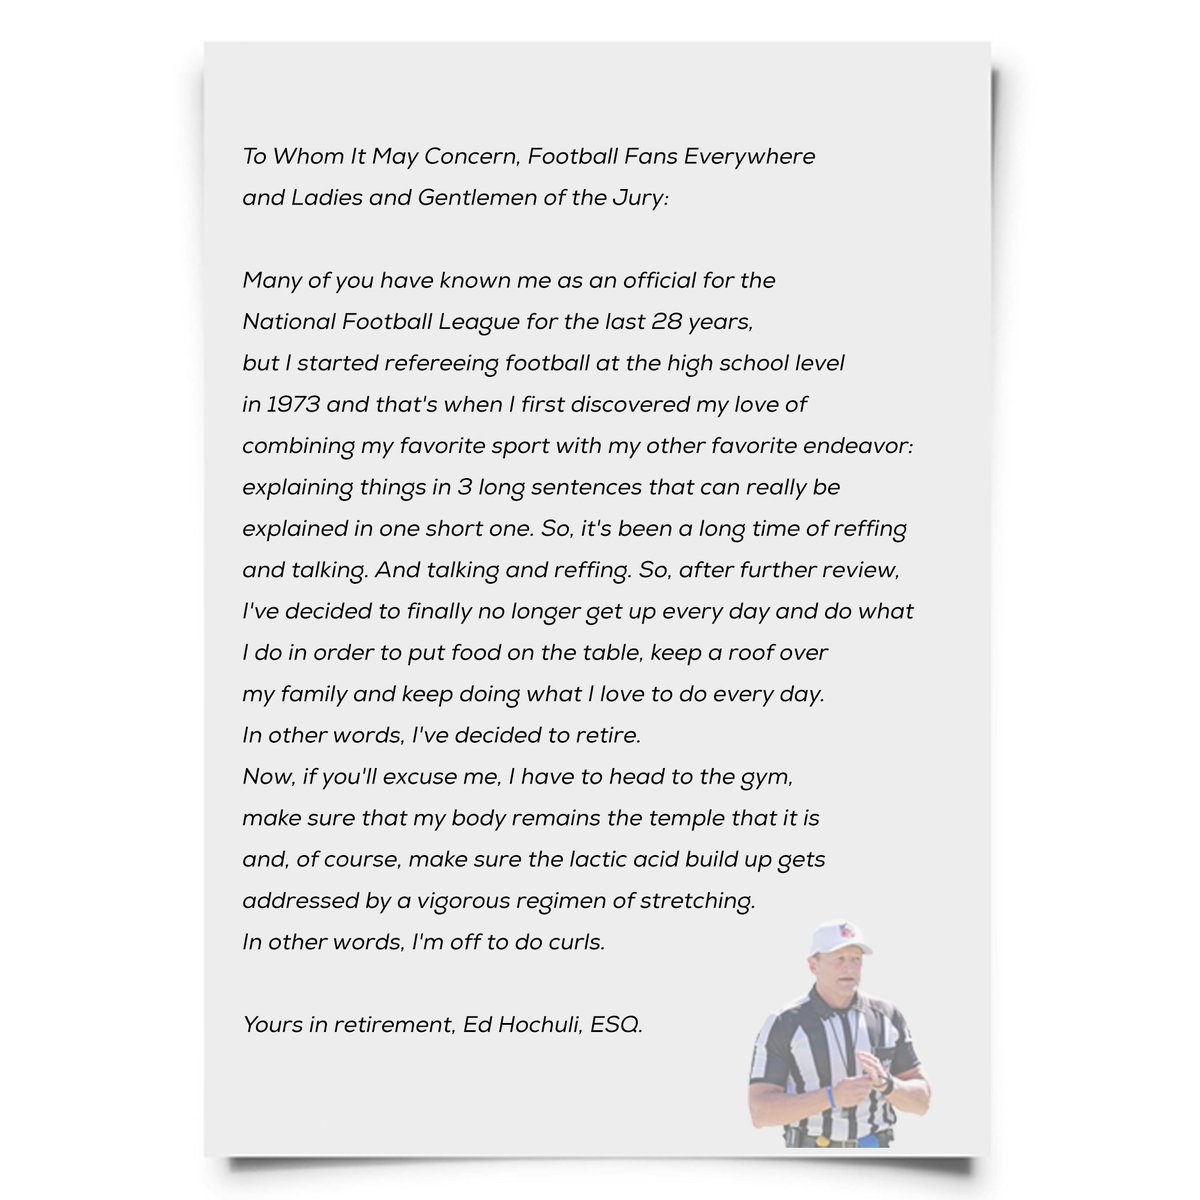 Rich eisen show on twitter exclusive ed hochuli retirement rich eisen show on twitter exclusive ed hochuli retirement letter he sent to nfl thecheapjerseys Image collections